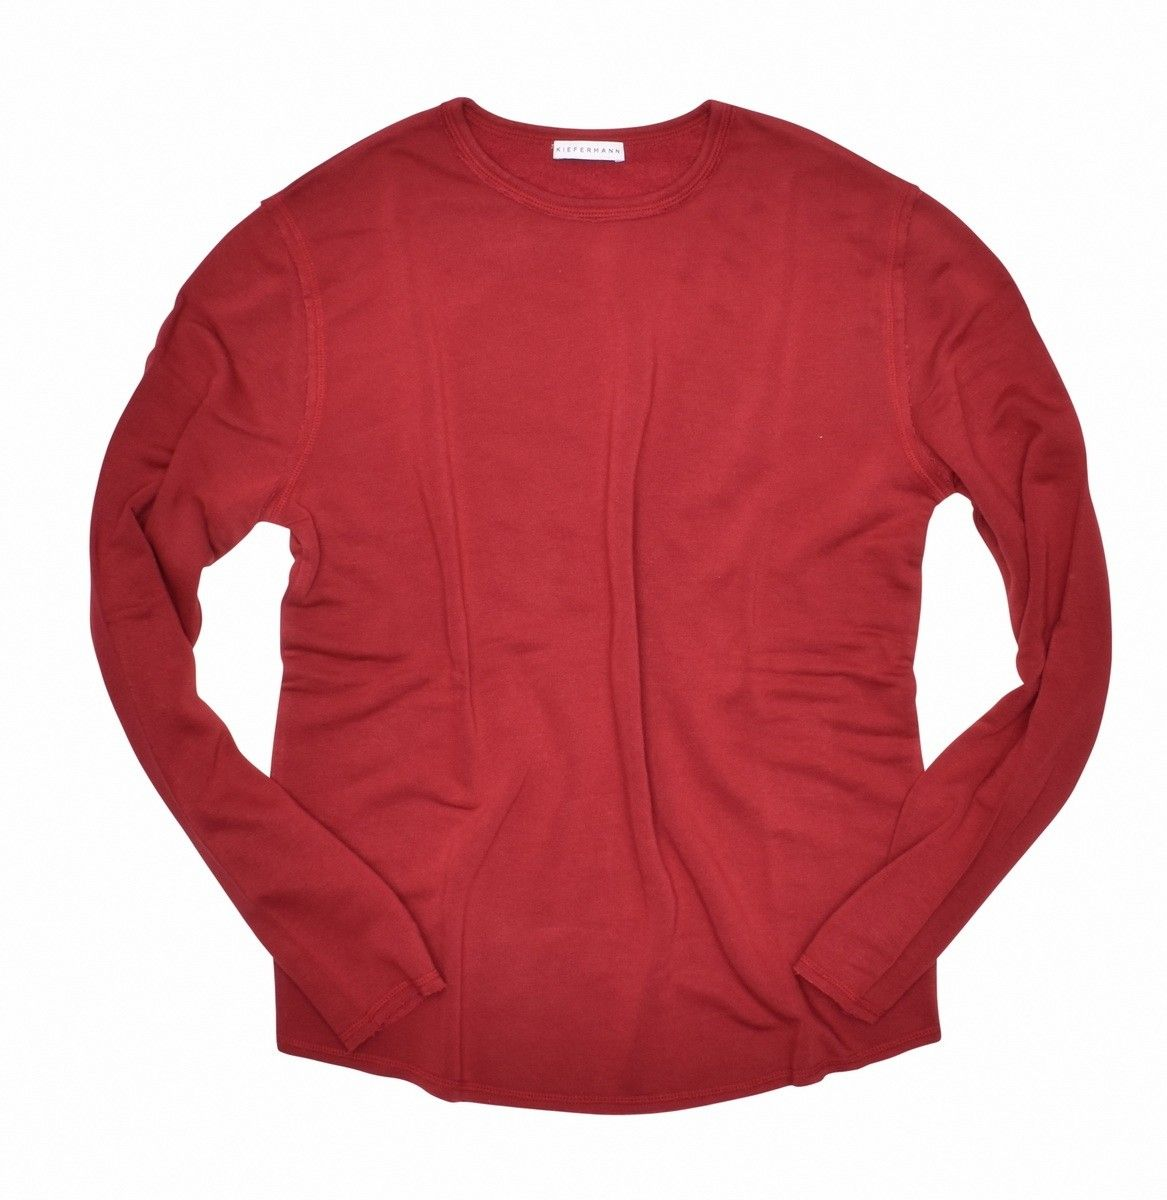 KIEFERMANN - Herren Sweater - Thore dark red